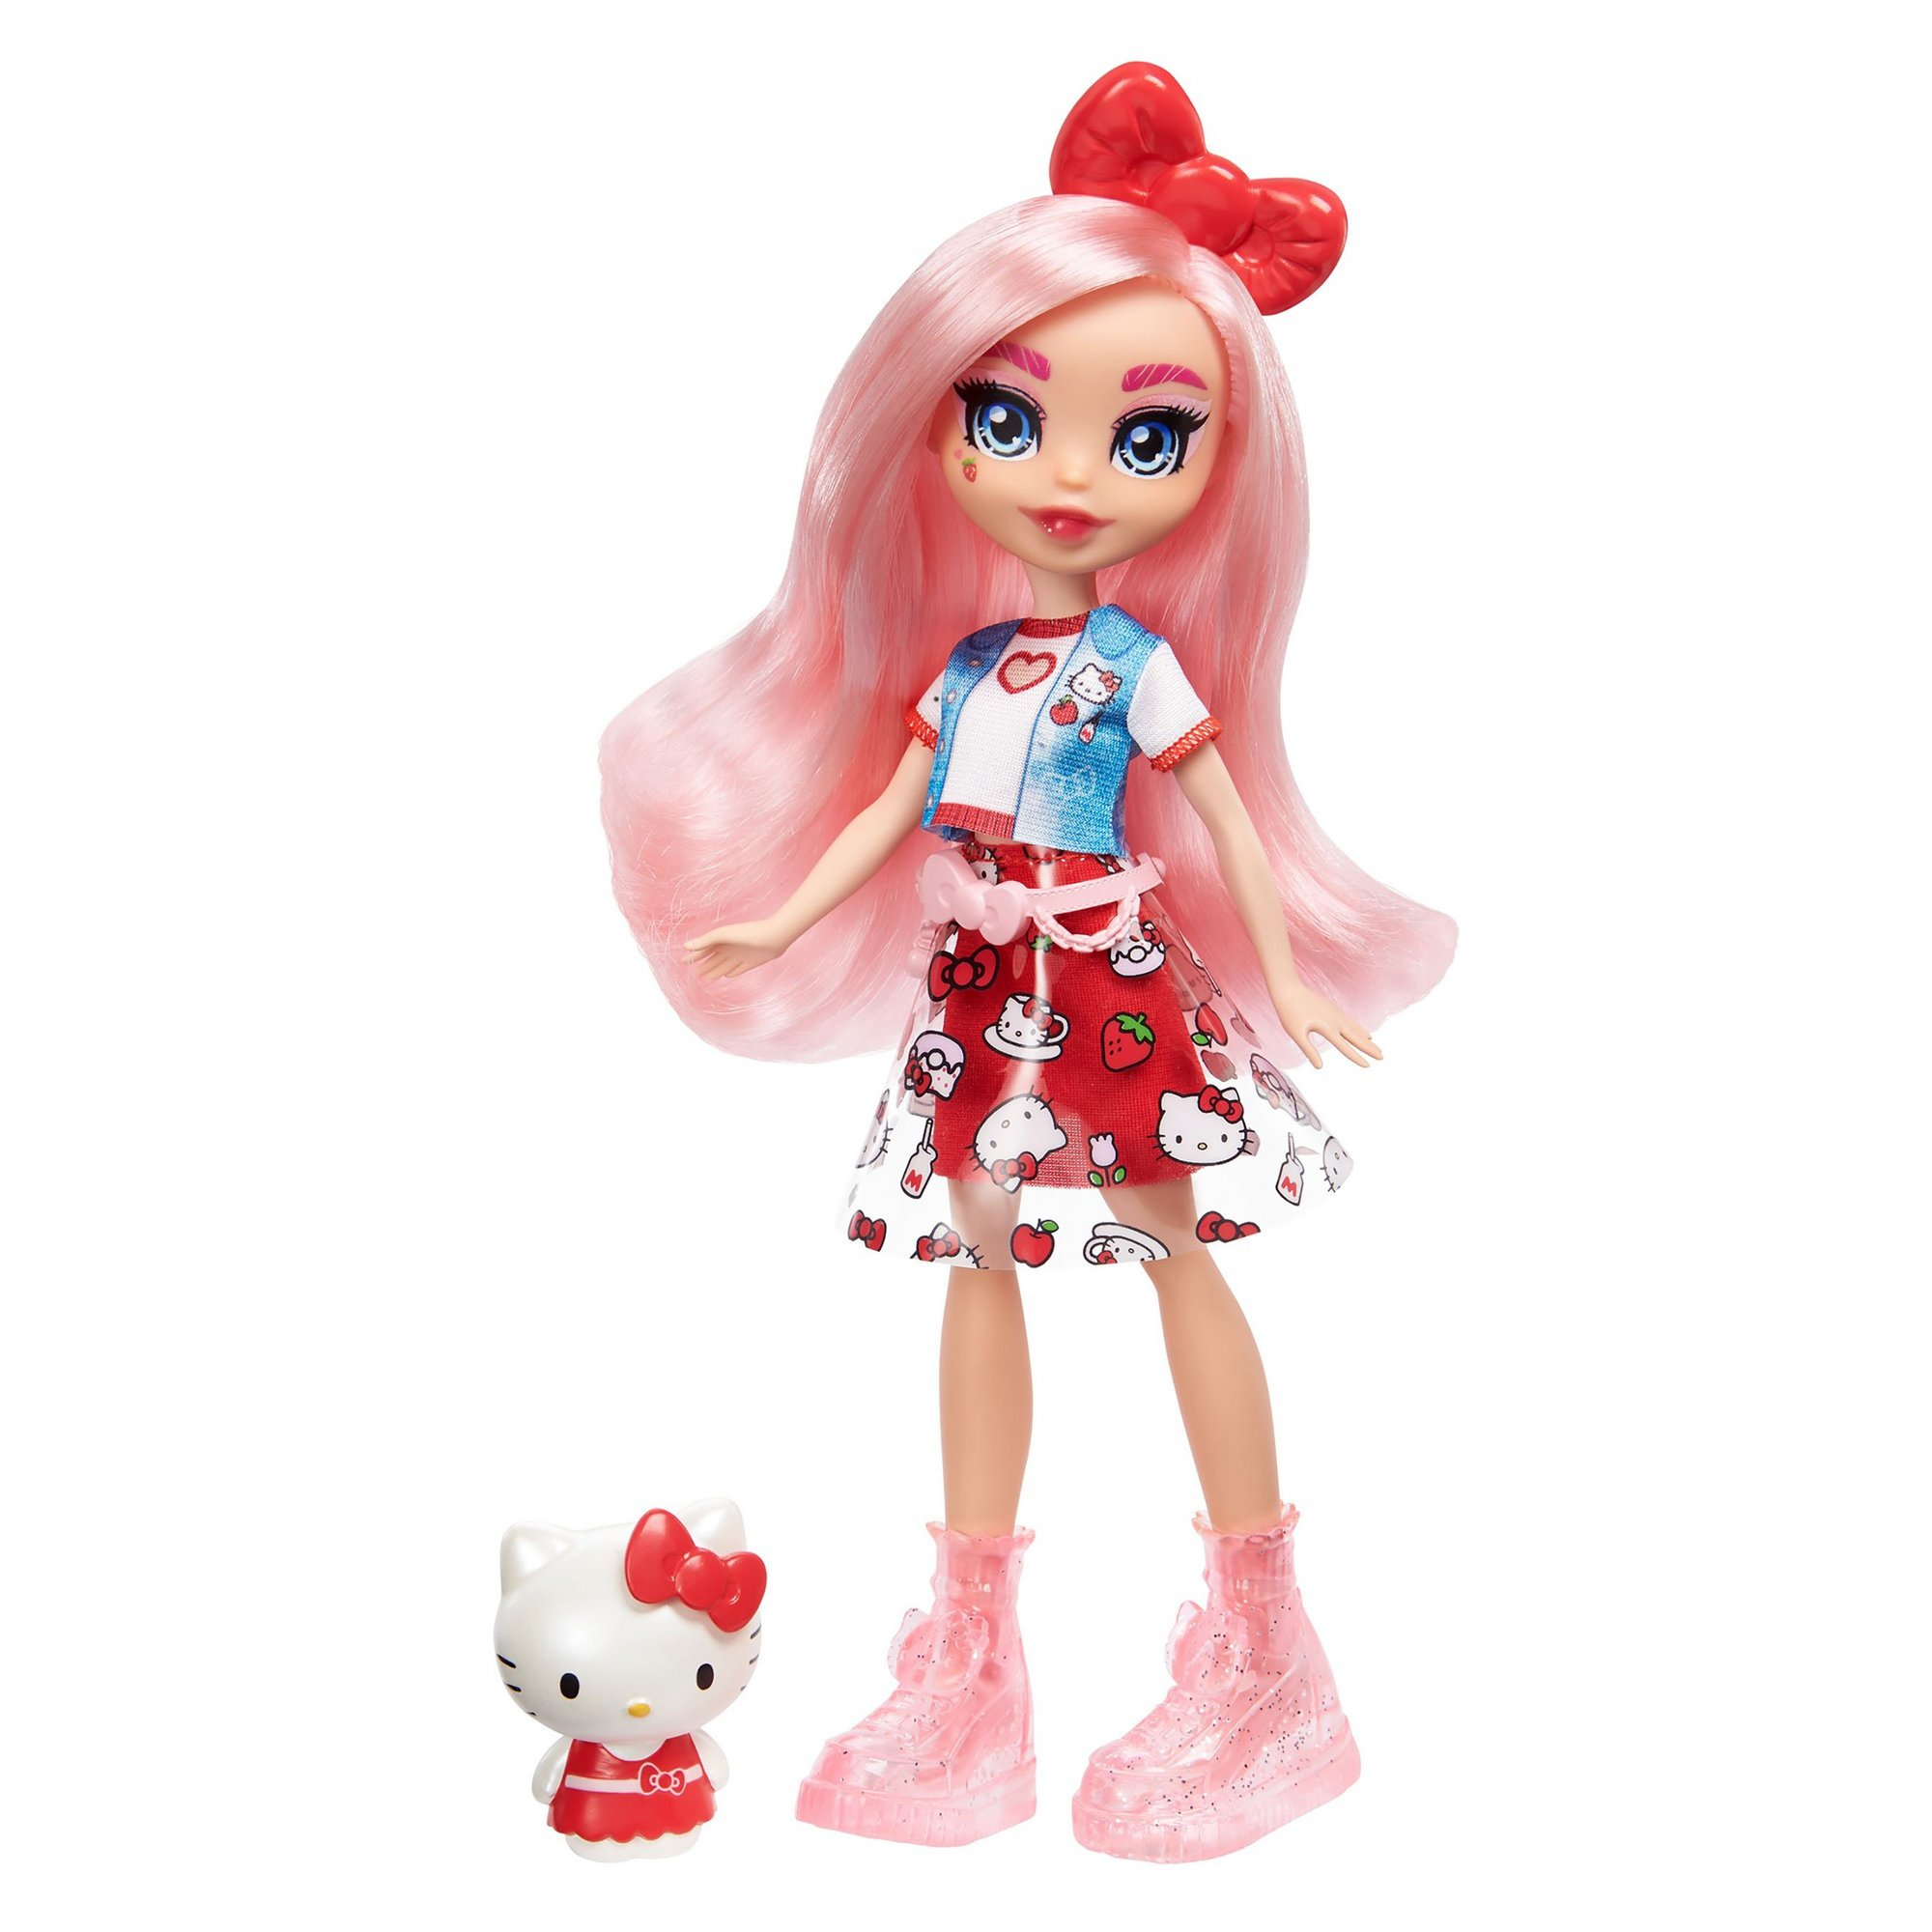 Image of Eclair and Hello Kitty Doll